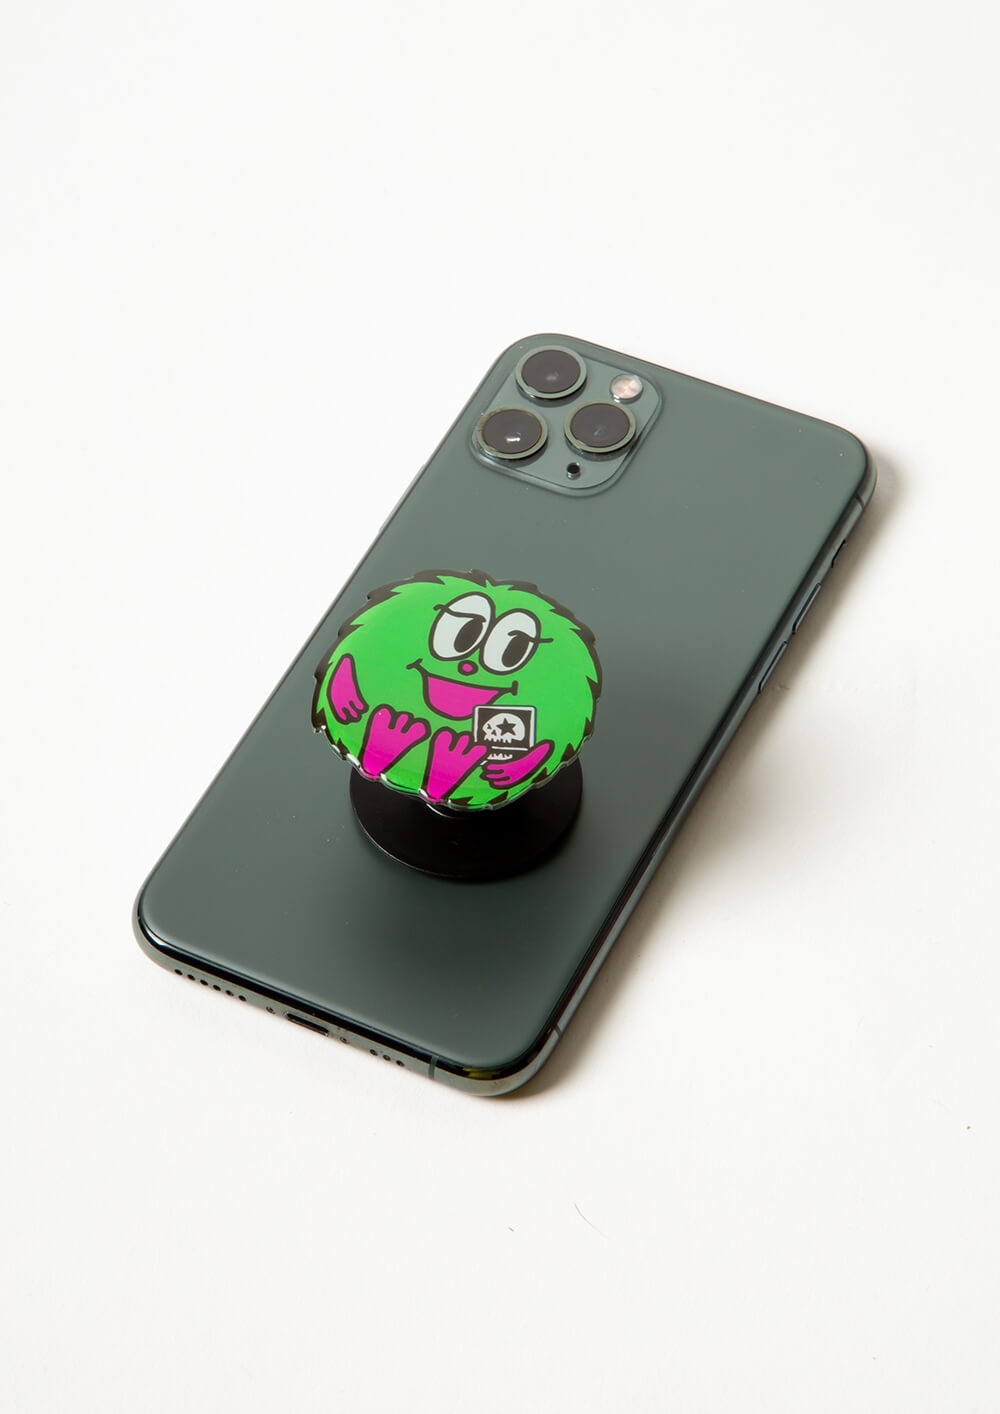 [SOLD OUT] かわいいちゃんのスマホグリップ (2WAY)